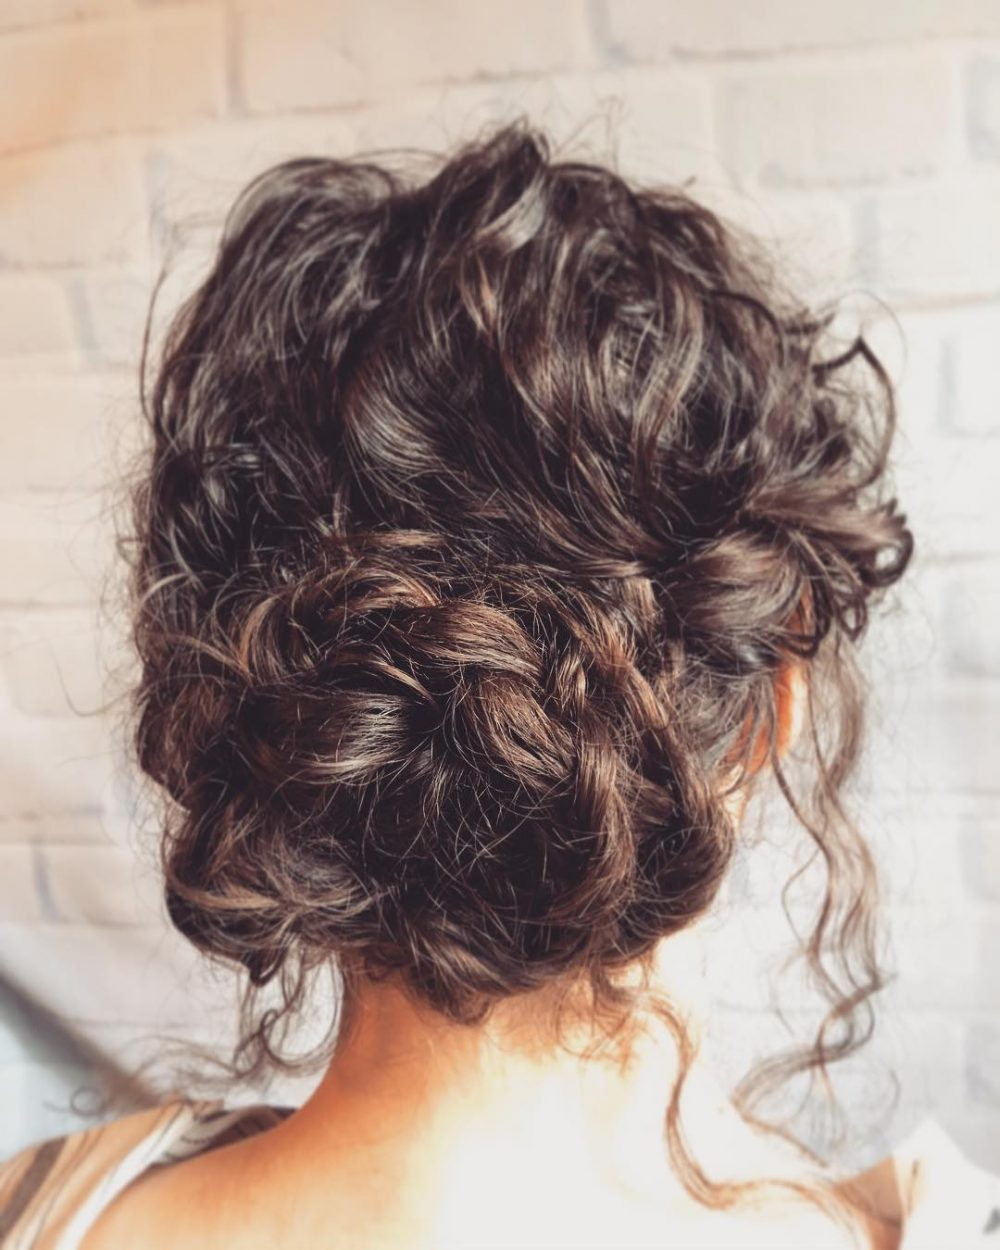 Total Goddess hairstyle